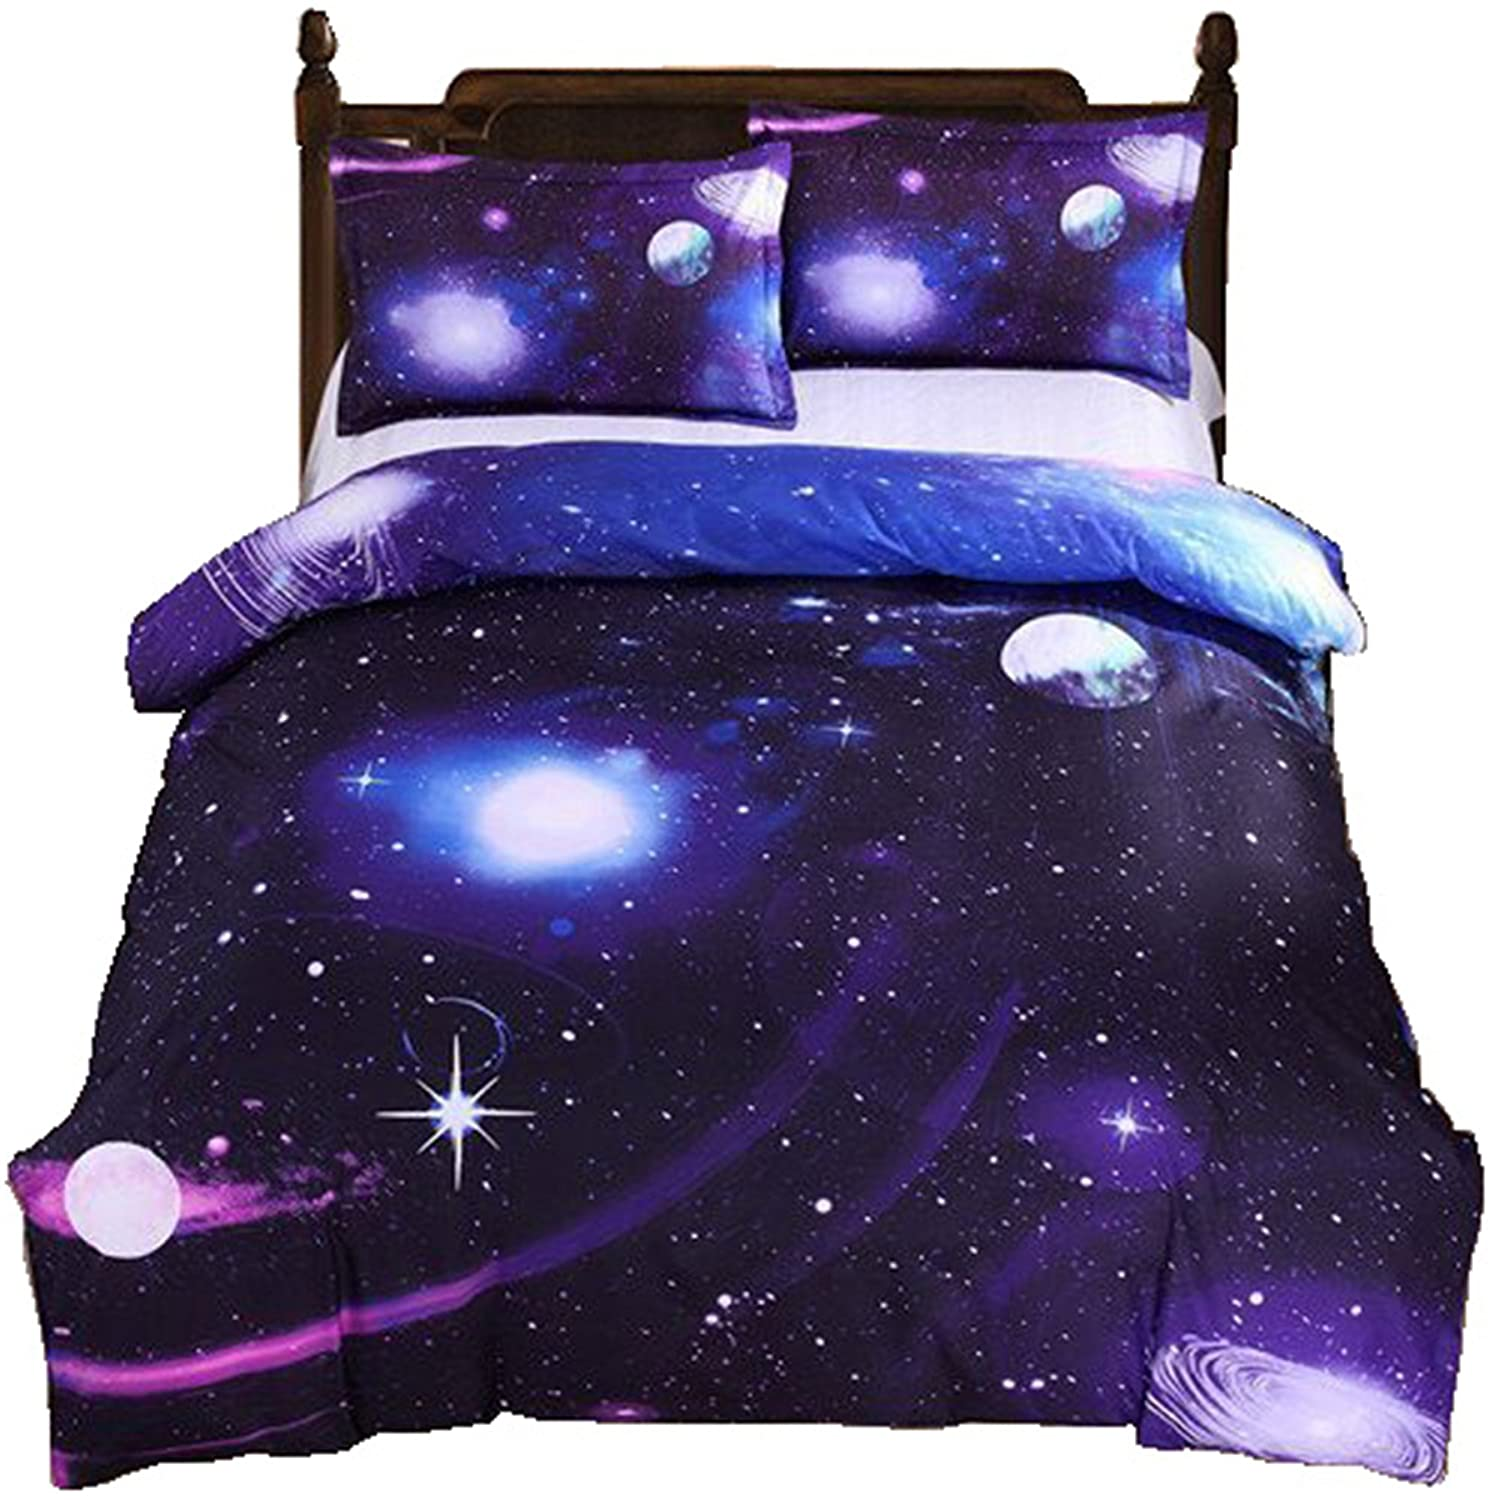 2 PCS Galaxy Bedding Sets Duvet Cover Sets Kids Bedding for Boys and Girls Teens Twin KK07